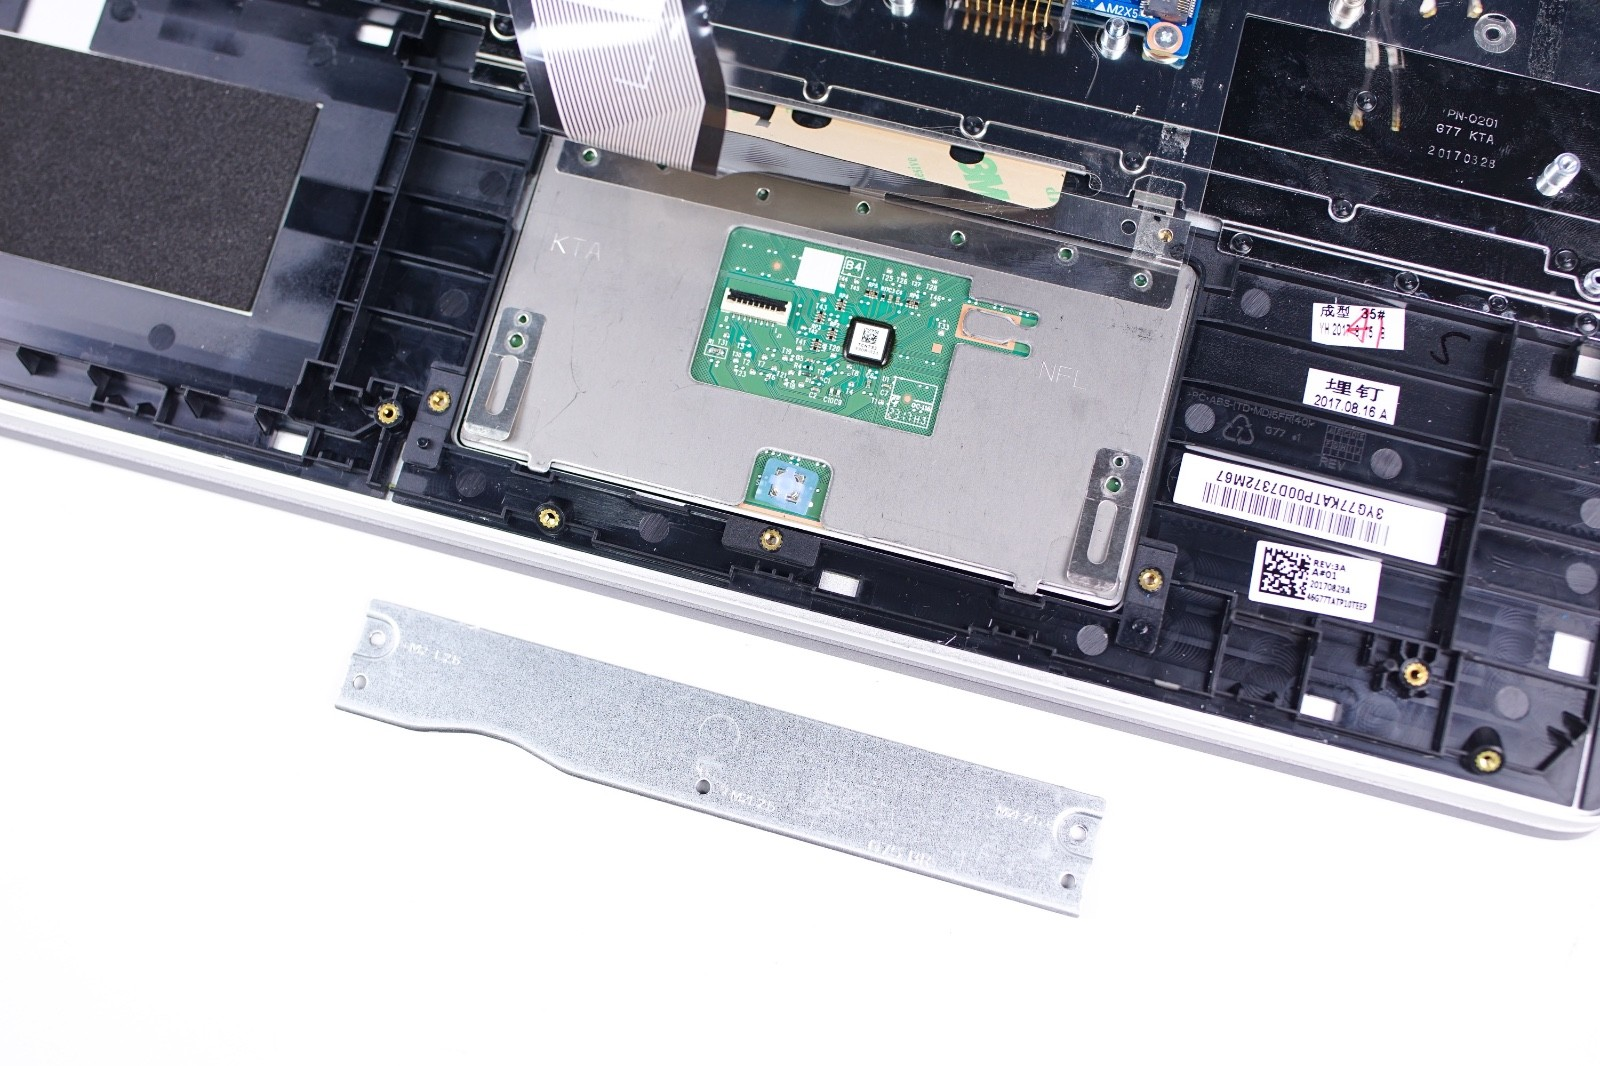 HP Pavilion 15-ck000 Disassembly and RAM, SSD and HDD upgrade